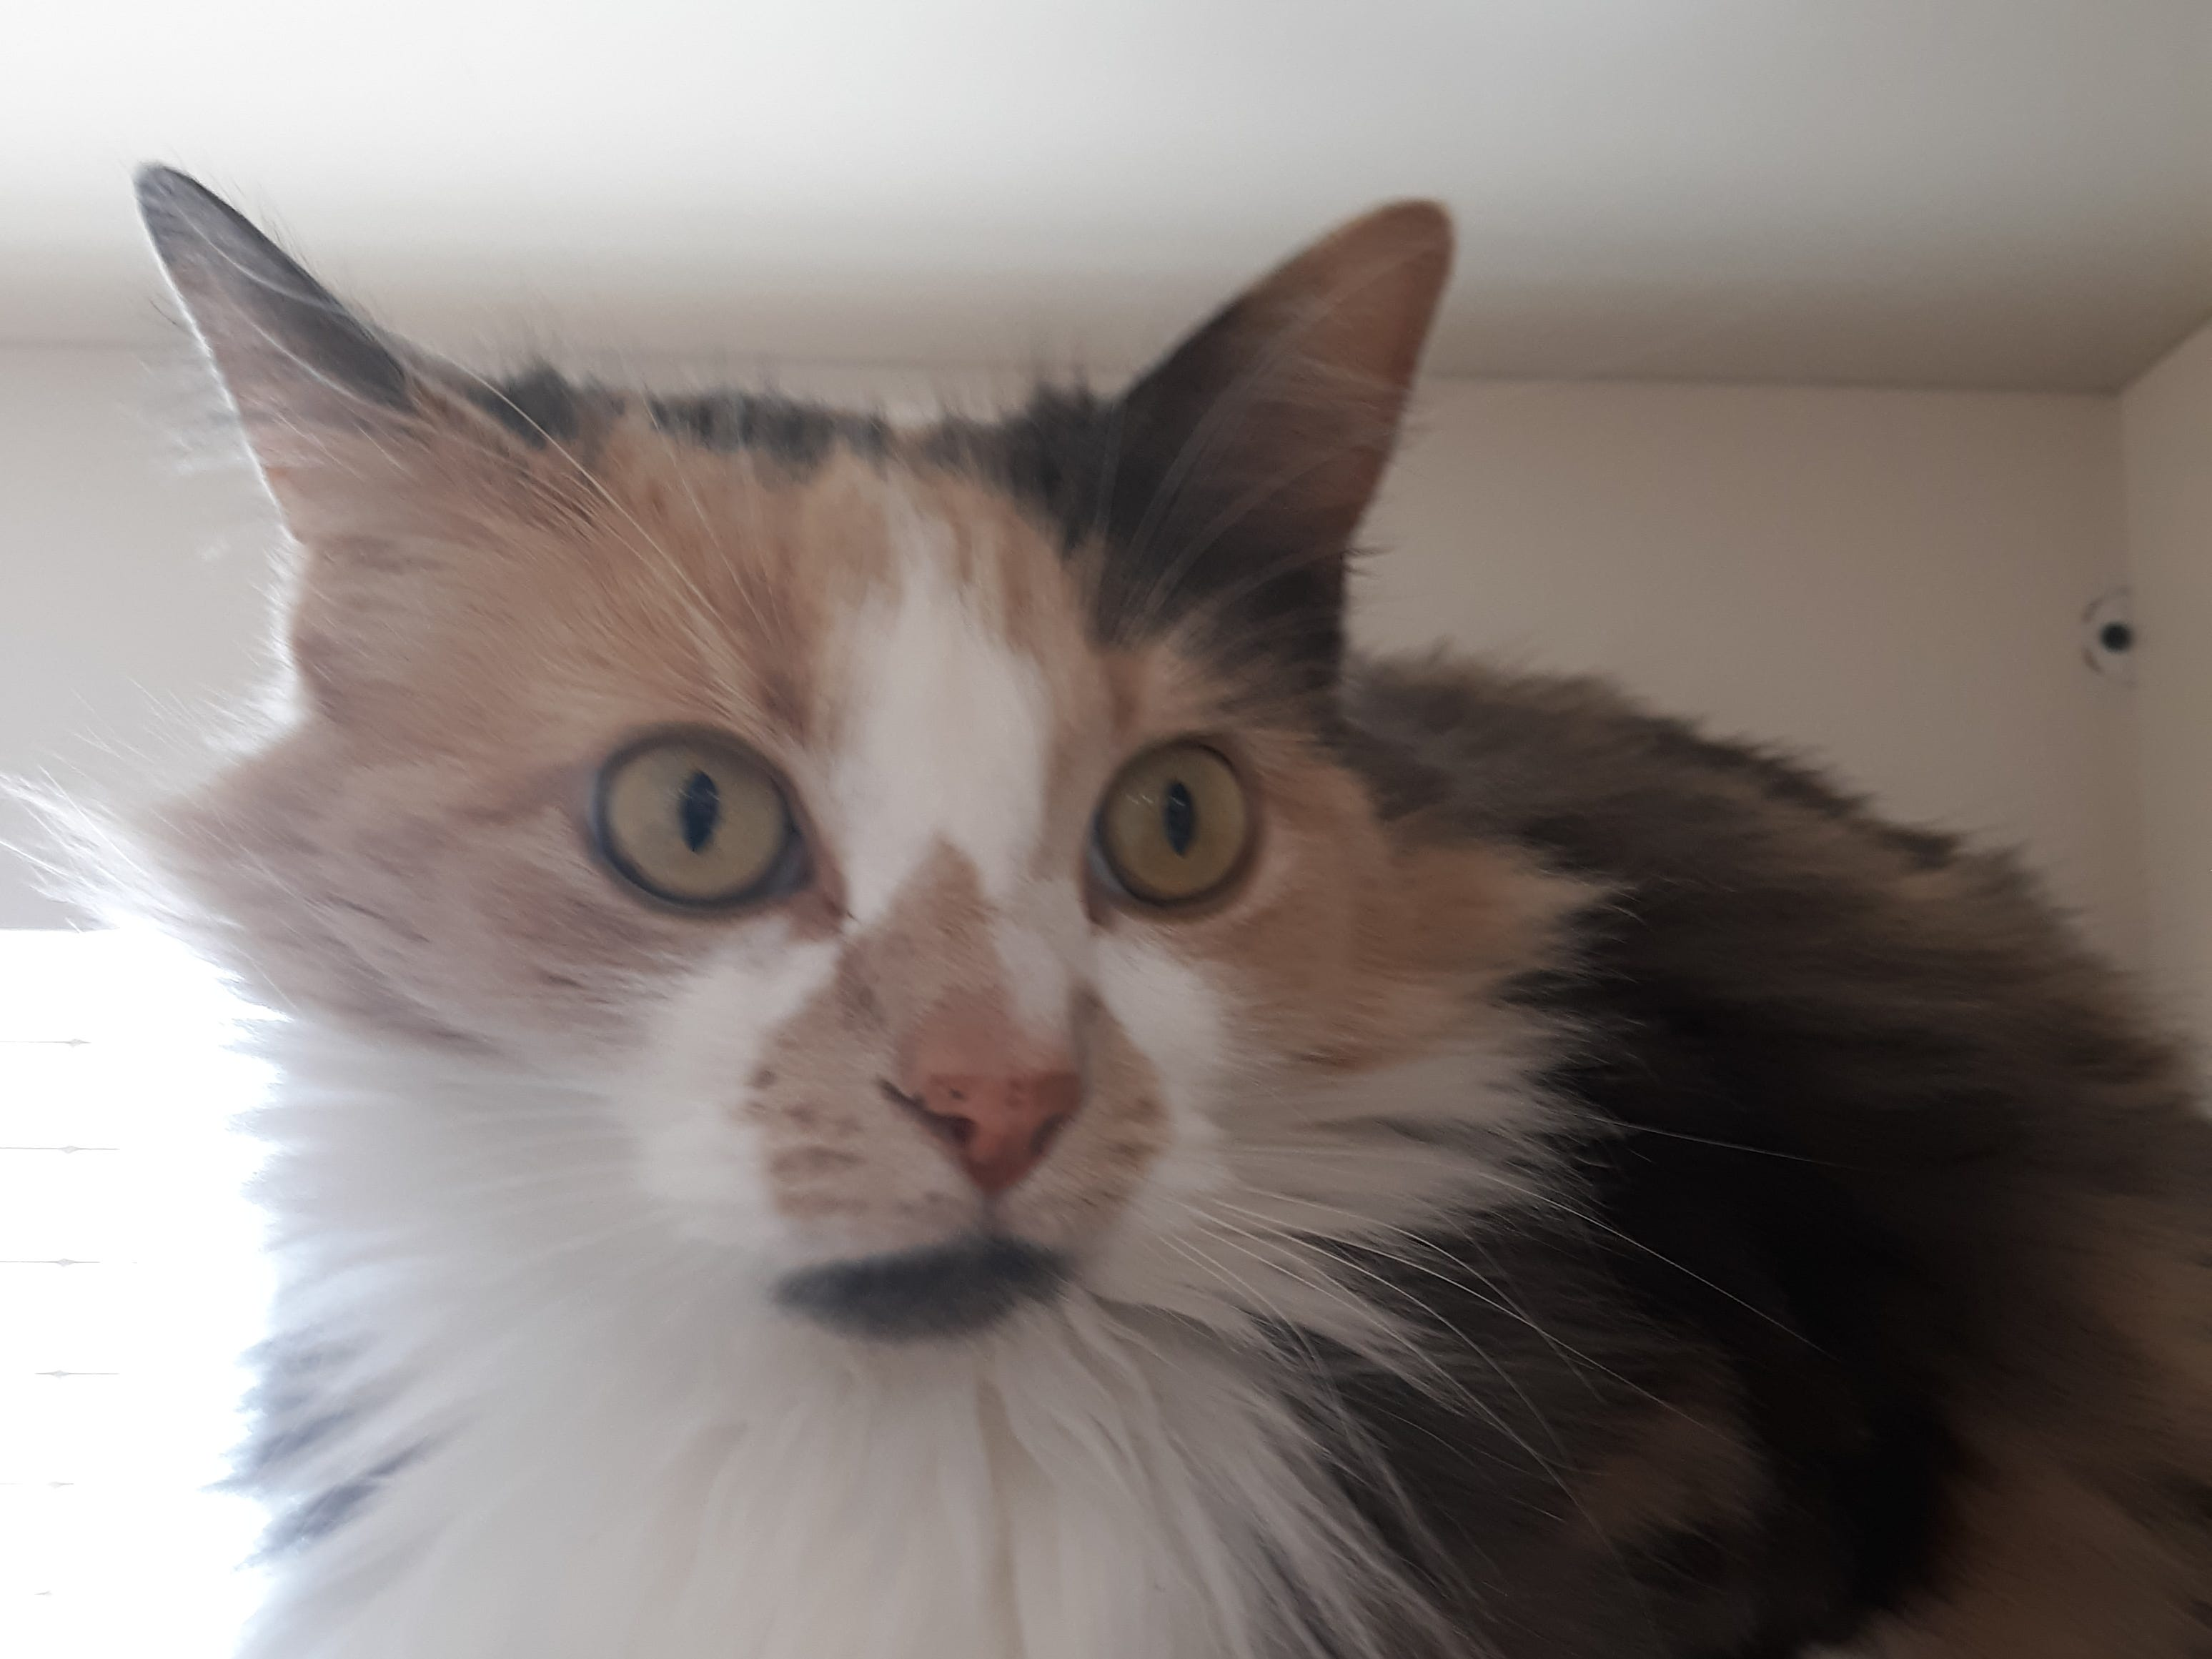 Izzy is a 5-year-old female calico cat with beautiful diluted coloring. She is spayed, vetted and up to date on vaccines. All animal adoptions include spaying or neutering and vaccinations. Apply with Another Chance Animal Welfare League at www.acawl.org. Call 356-0698.